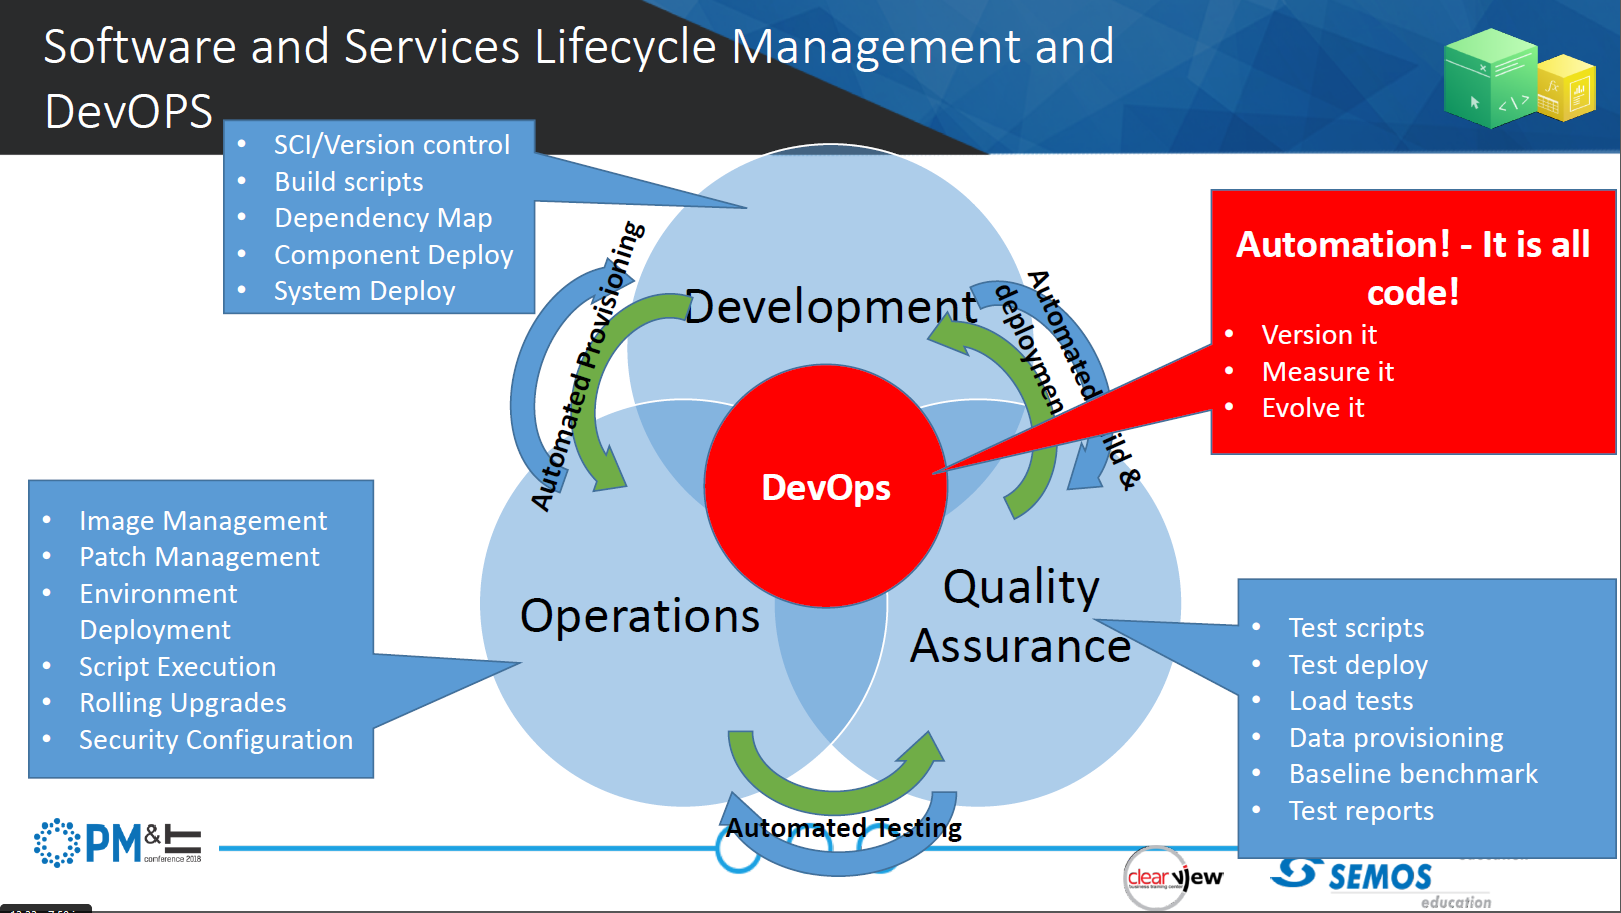 DevOps intersection diagram